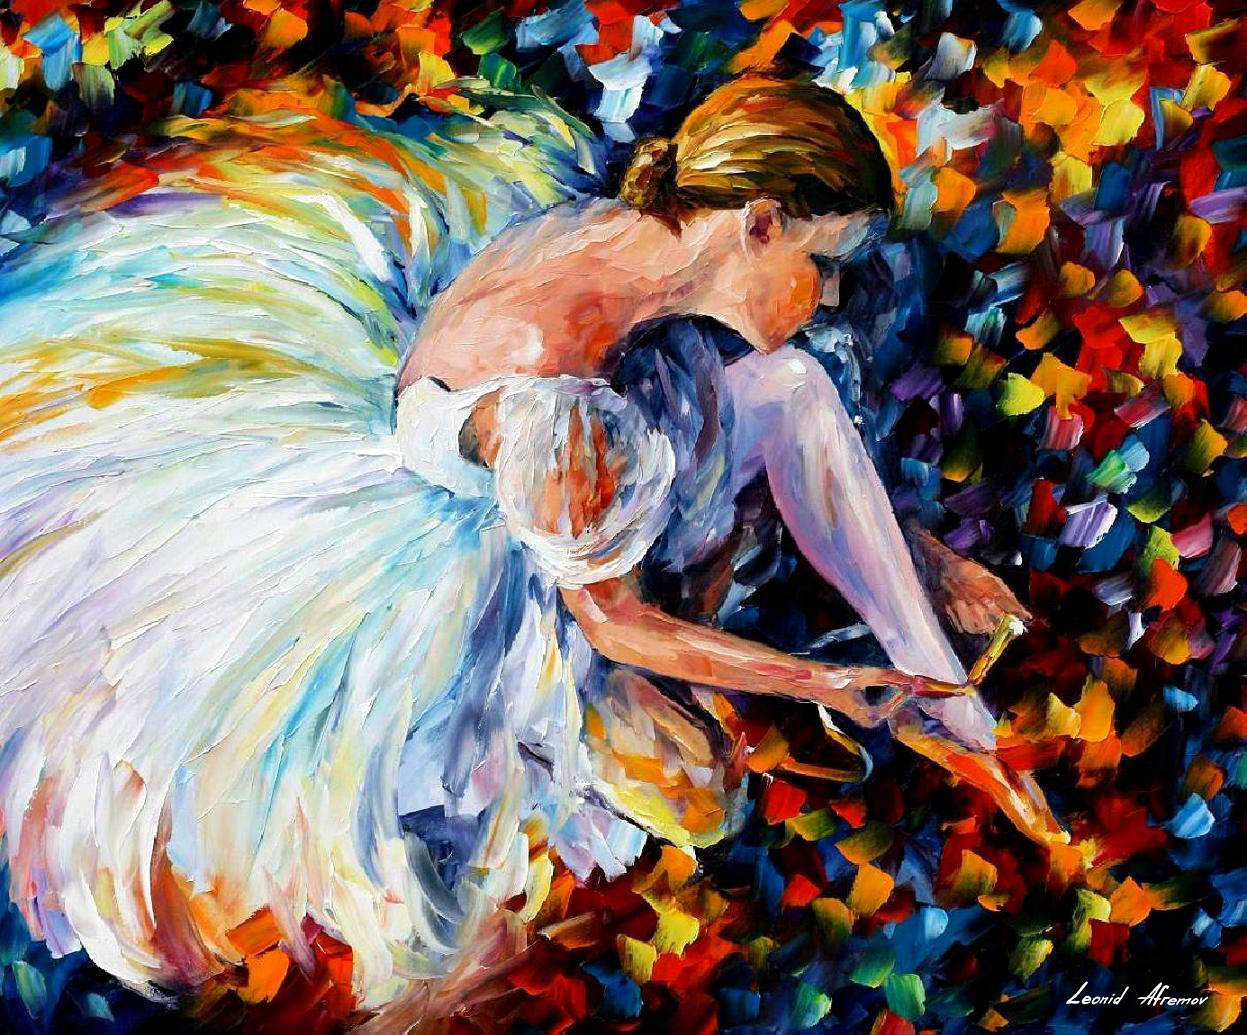 Cuadros Al Oleo De Bailarinas Ballerina Palette Knife Oil Painting On Canvas By Leonid